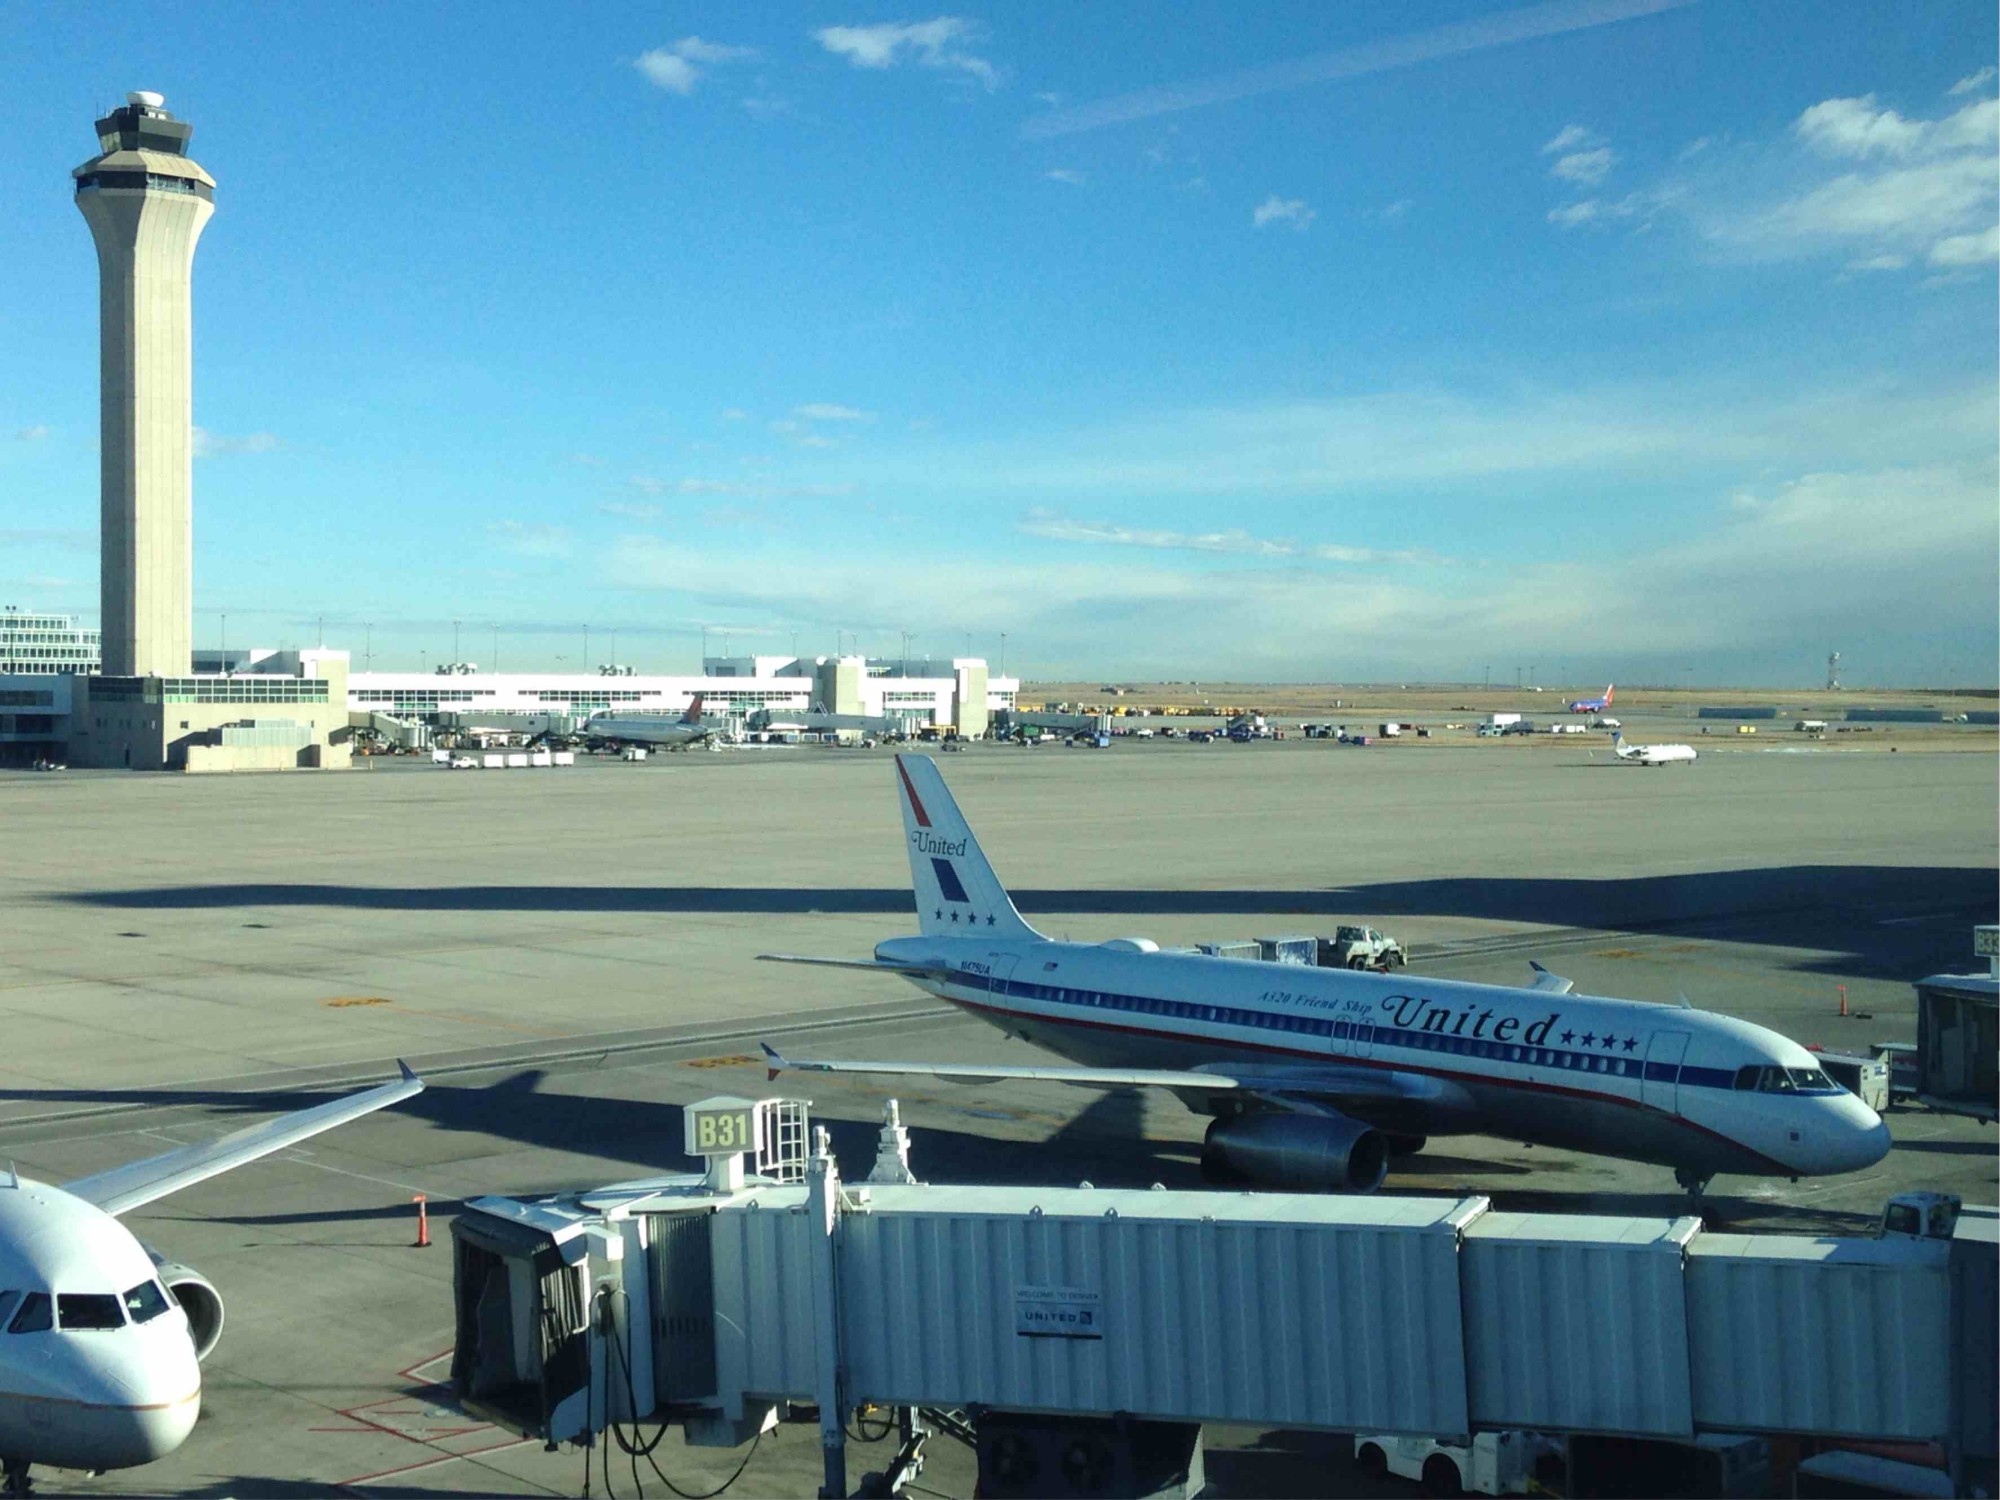 DEN: Denver International Airport Lounge Access (United States